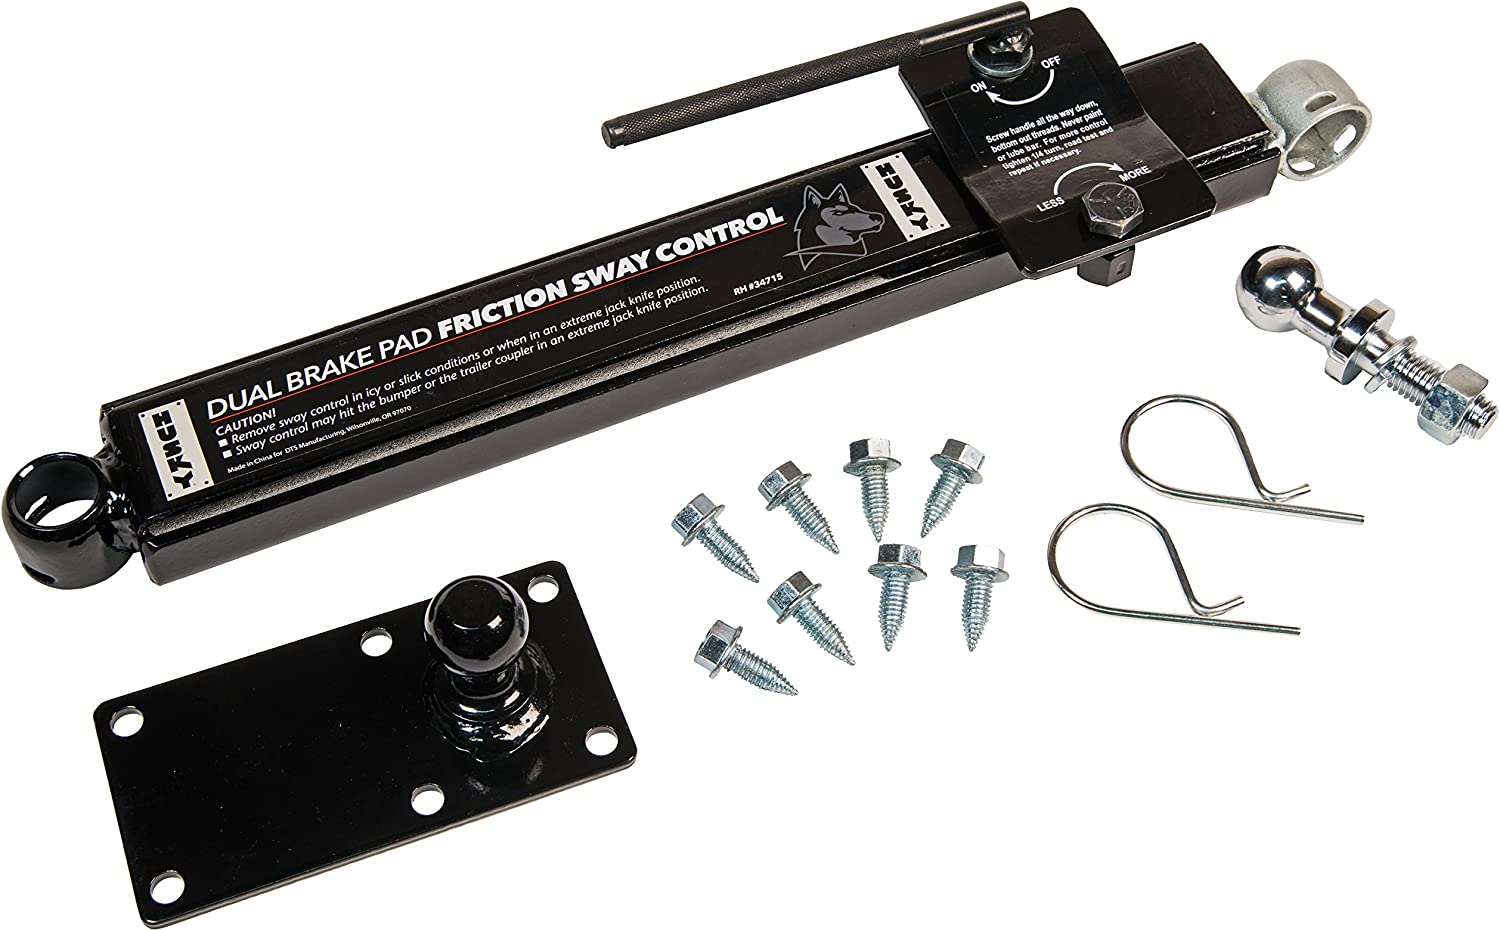 Renewed EAZ LIFT Screw-On Sway Control Right-Mounted Passenger Side 48380